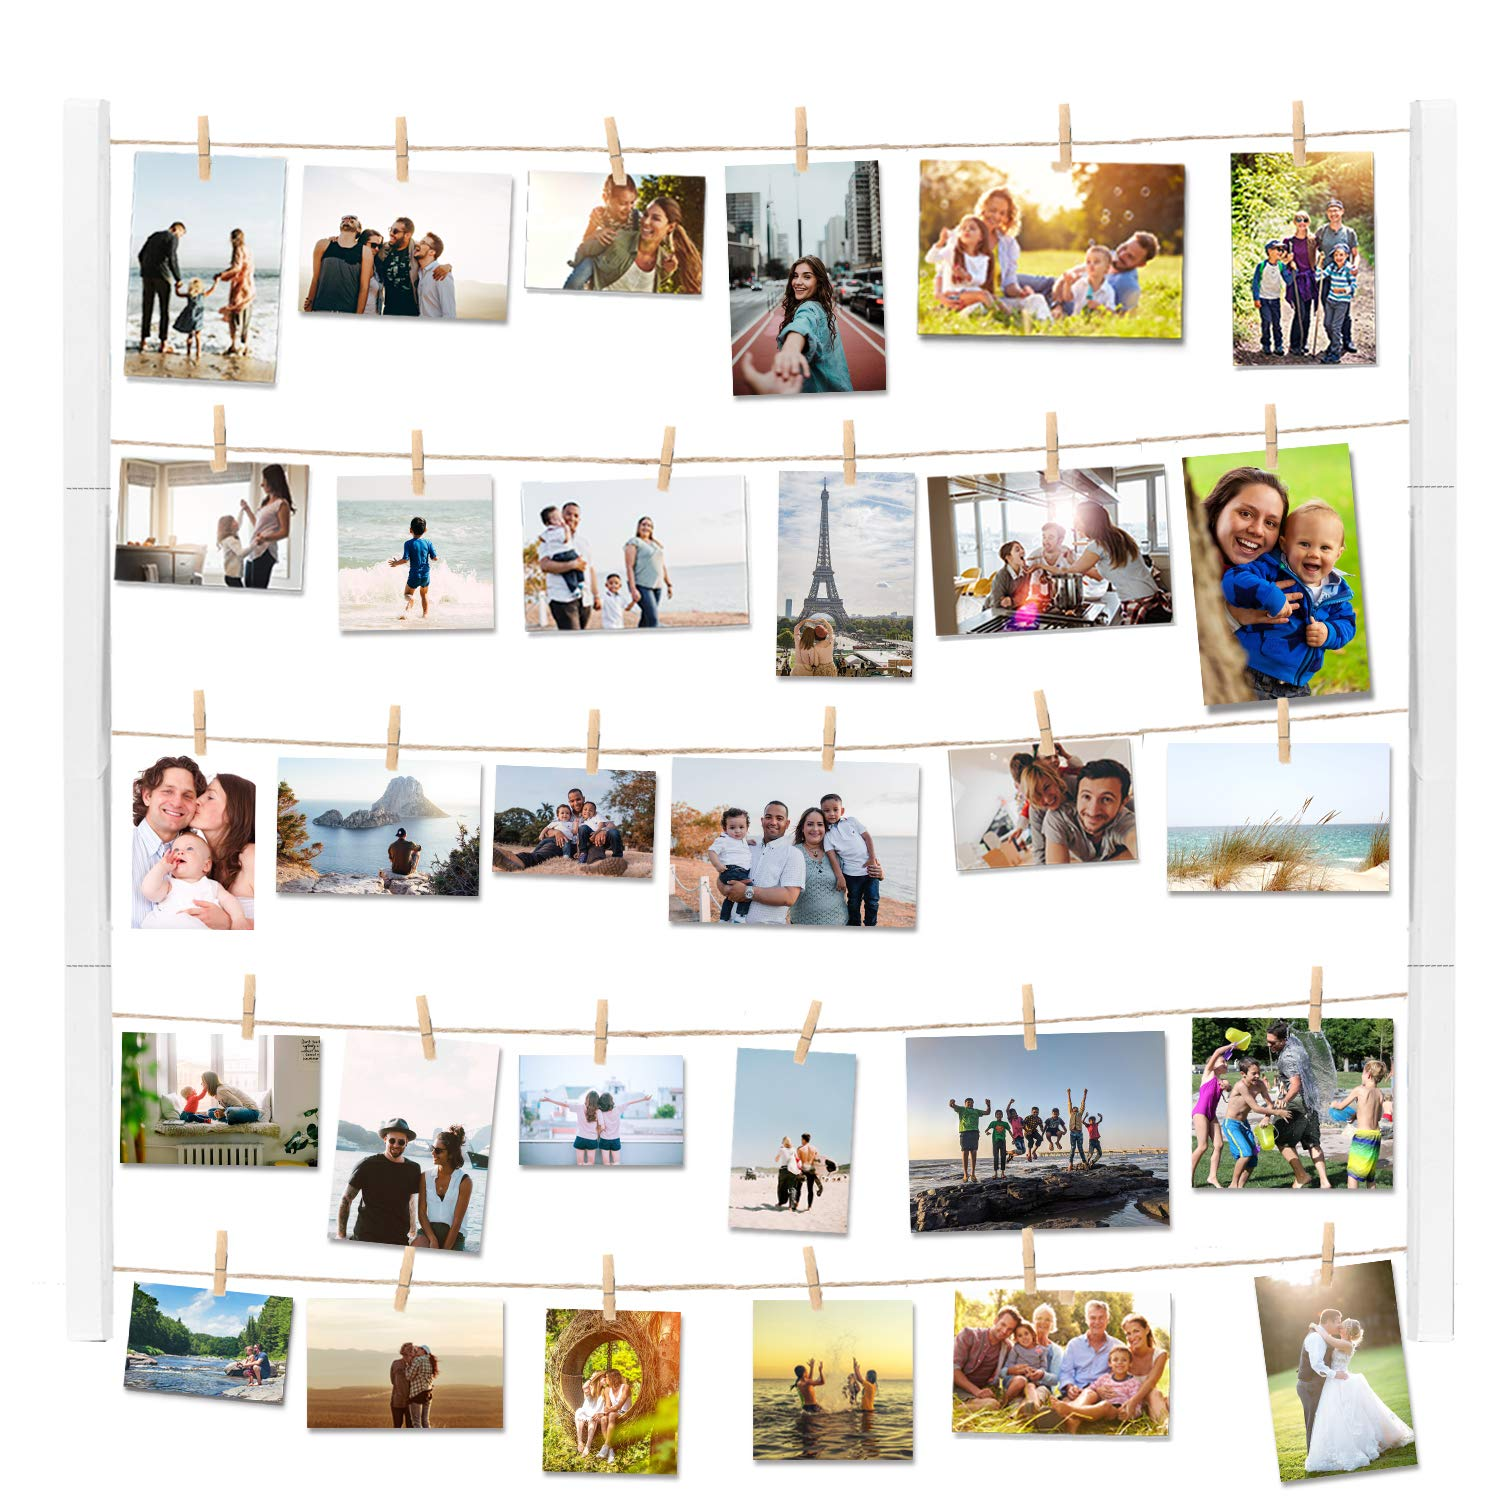 Vencipa Multi Photo Display Pictures Organizer for Hanging Wall Decor, DIY Wood Picture Frames Collage with 30 Clips, 28'' X 22'' inch Vertical & Horizontal Display (White). by Vencipa